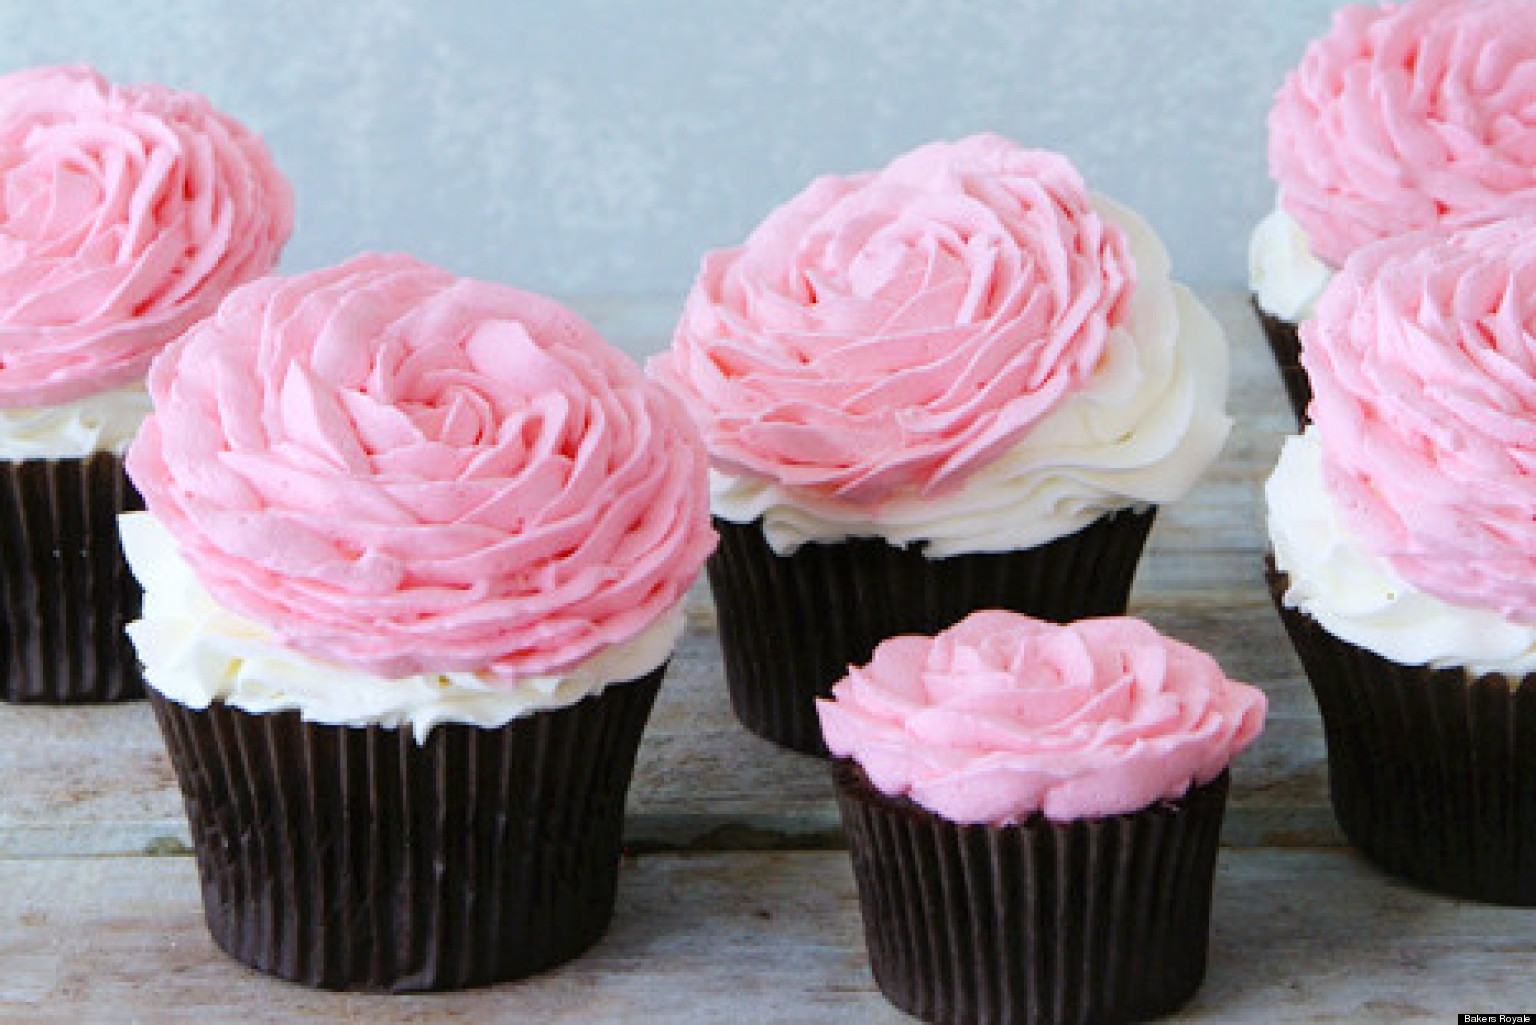 50 Reasons We Still Love Cupcakes